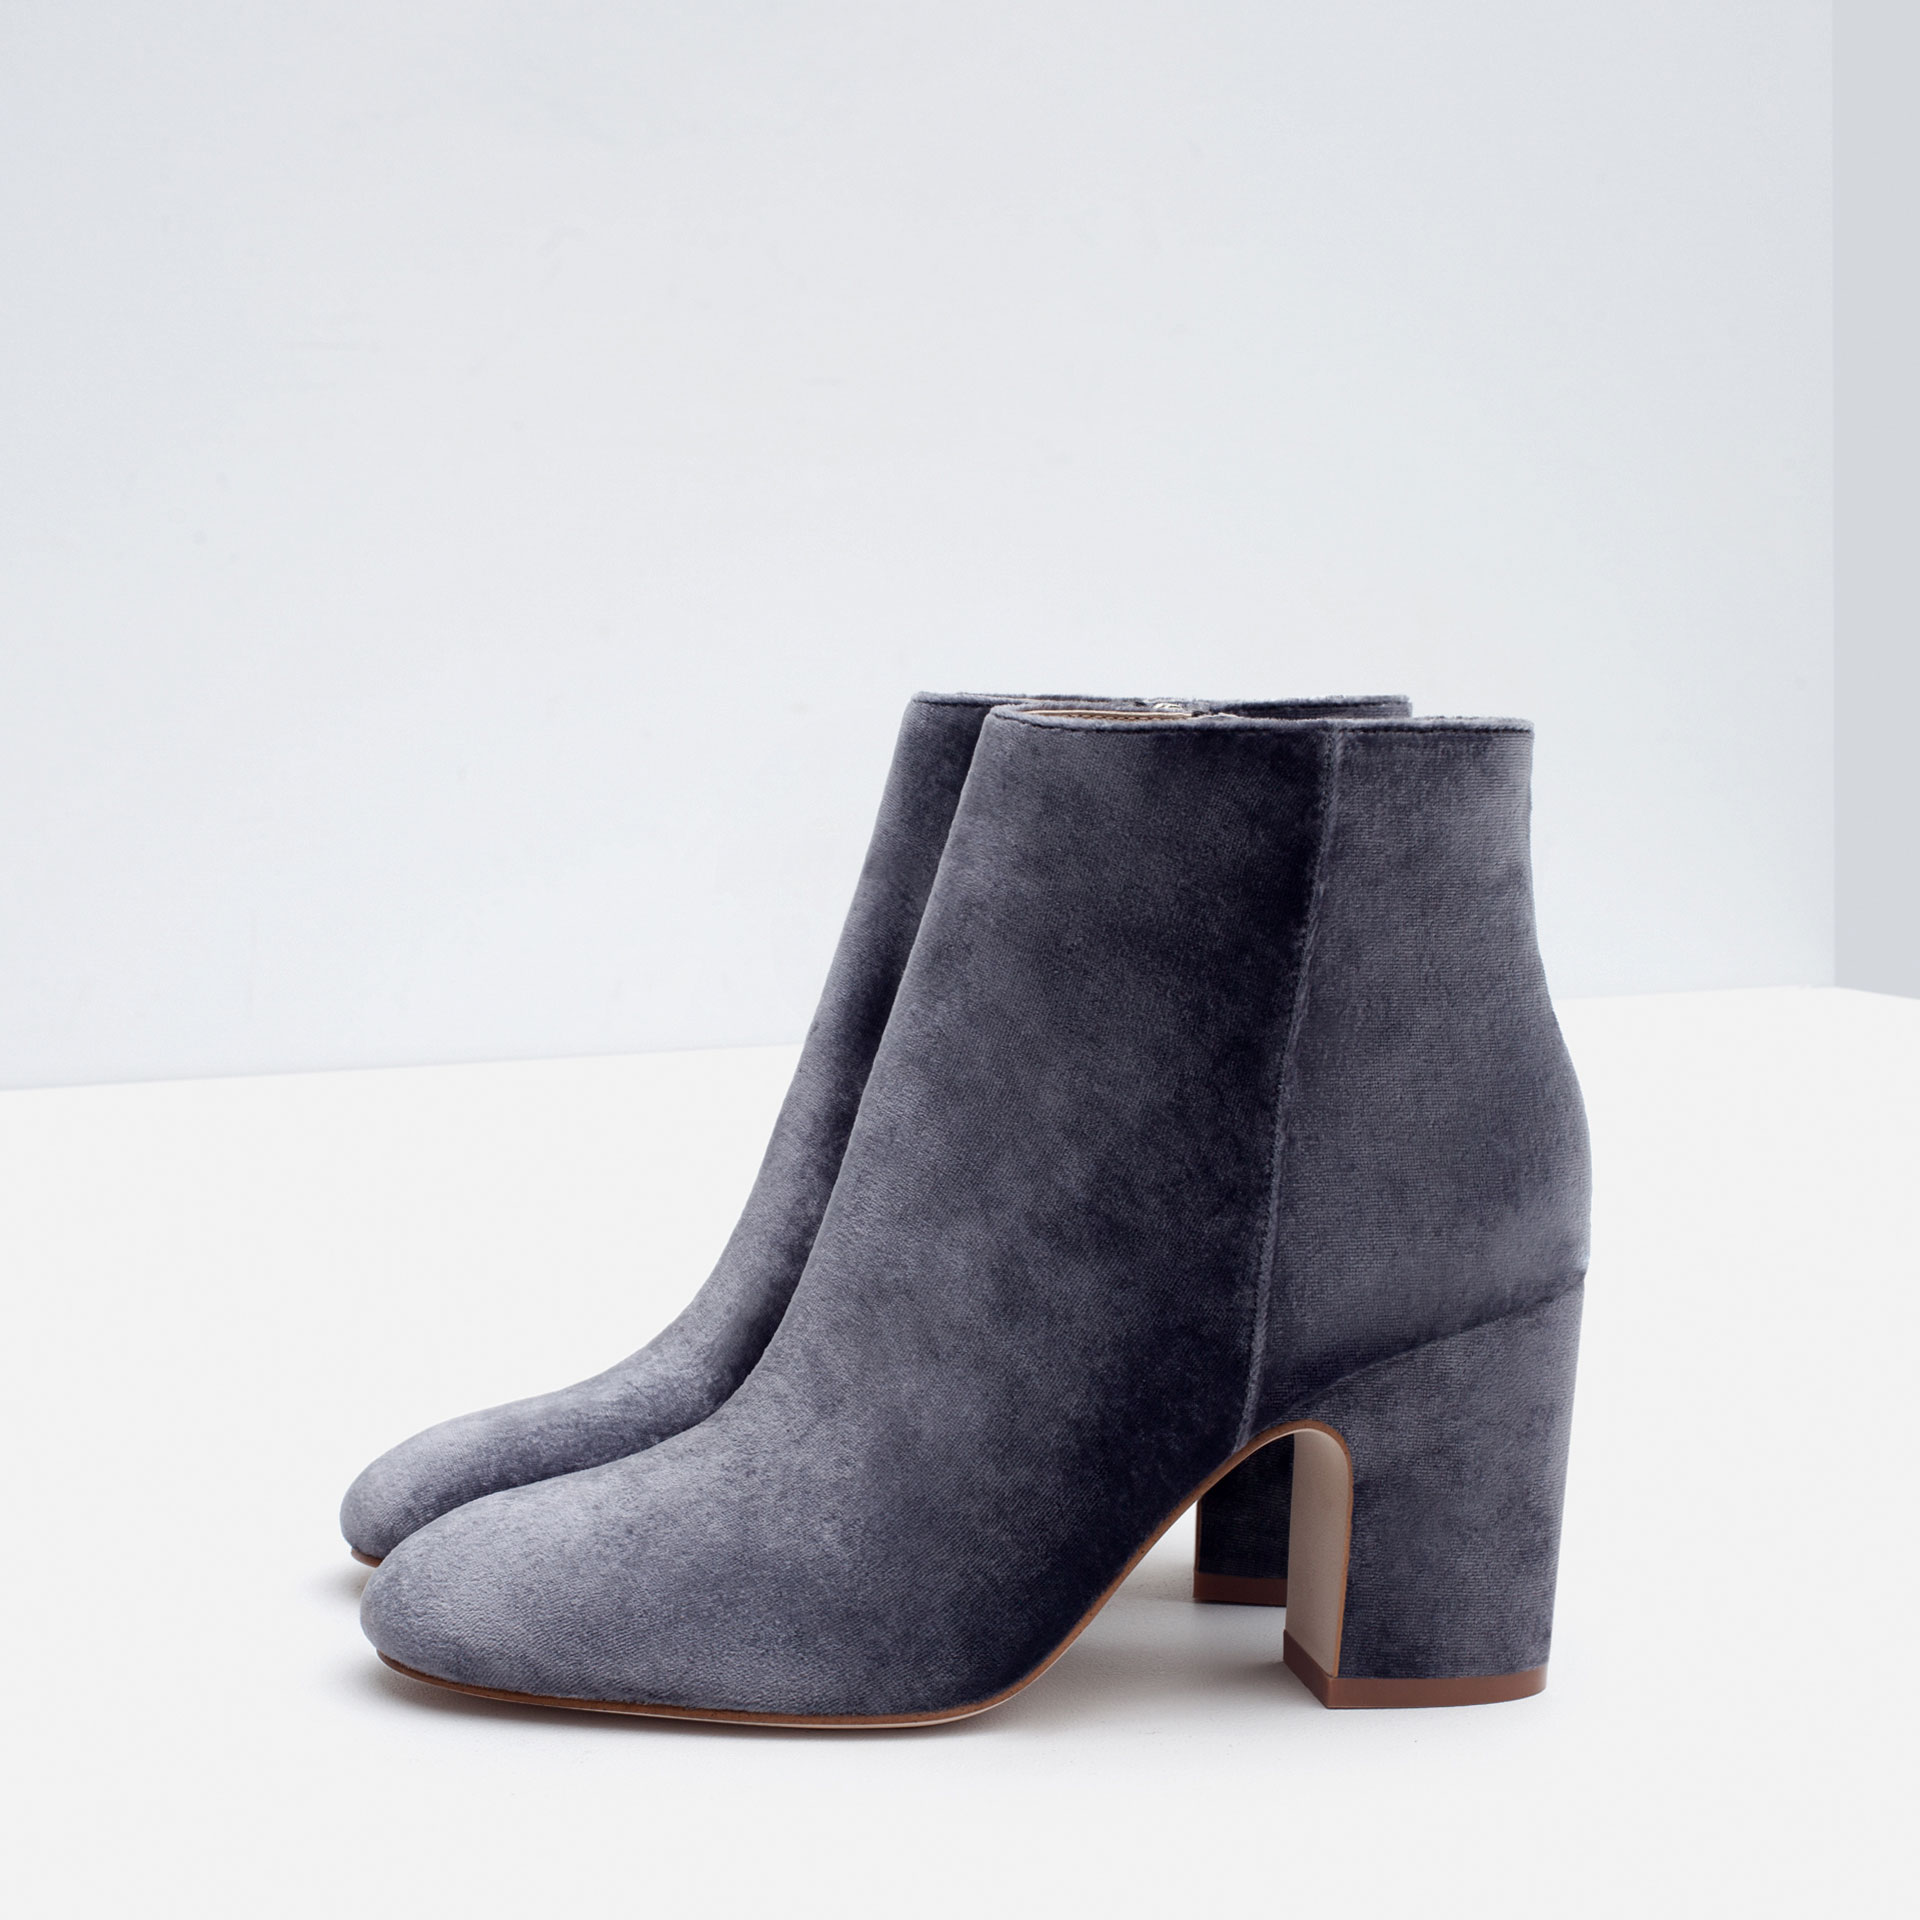 Popular Zara Leather High Heel Ankle Boots In Black  Lyst